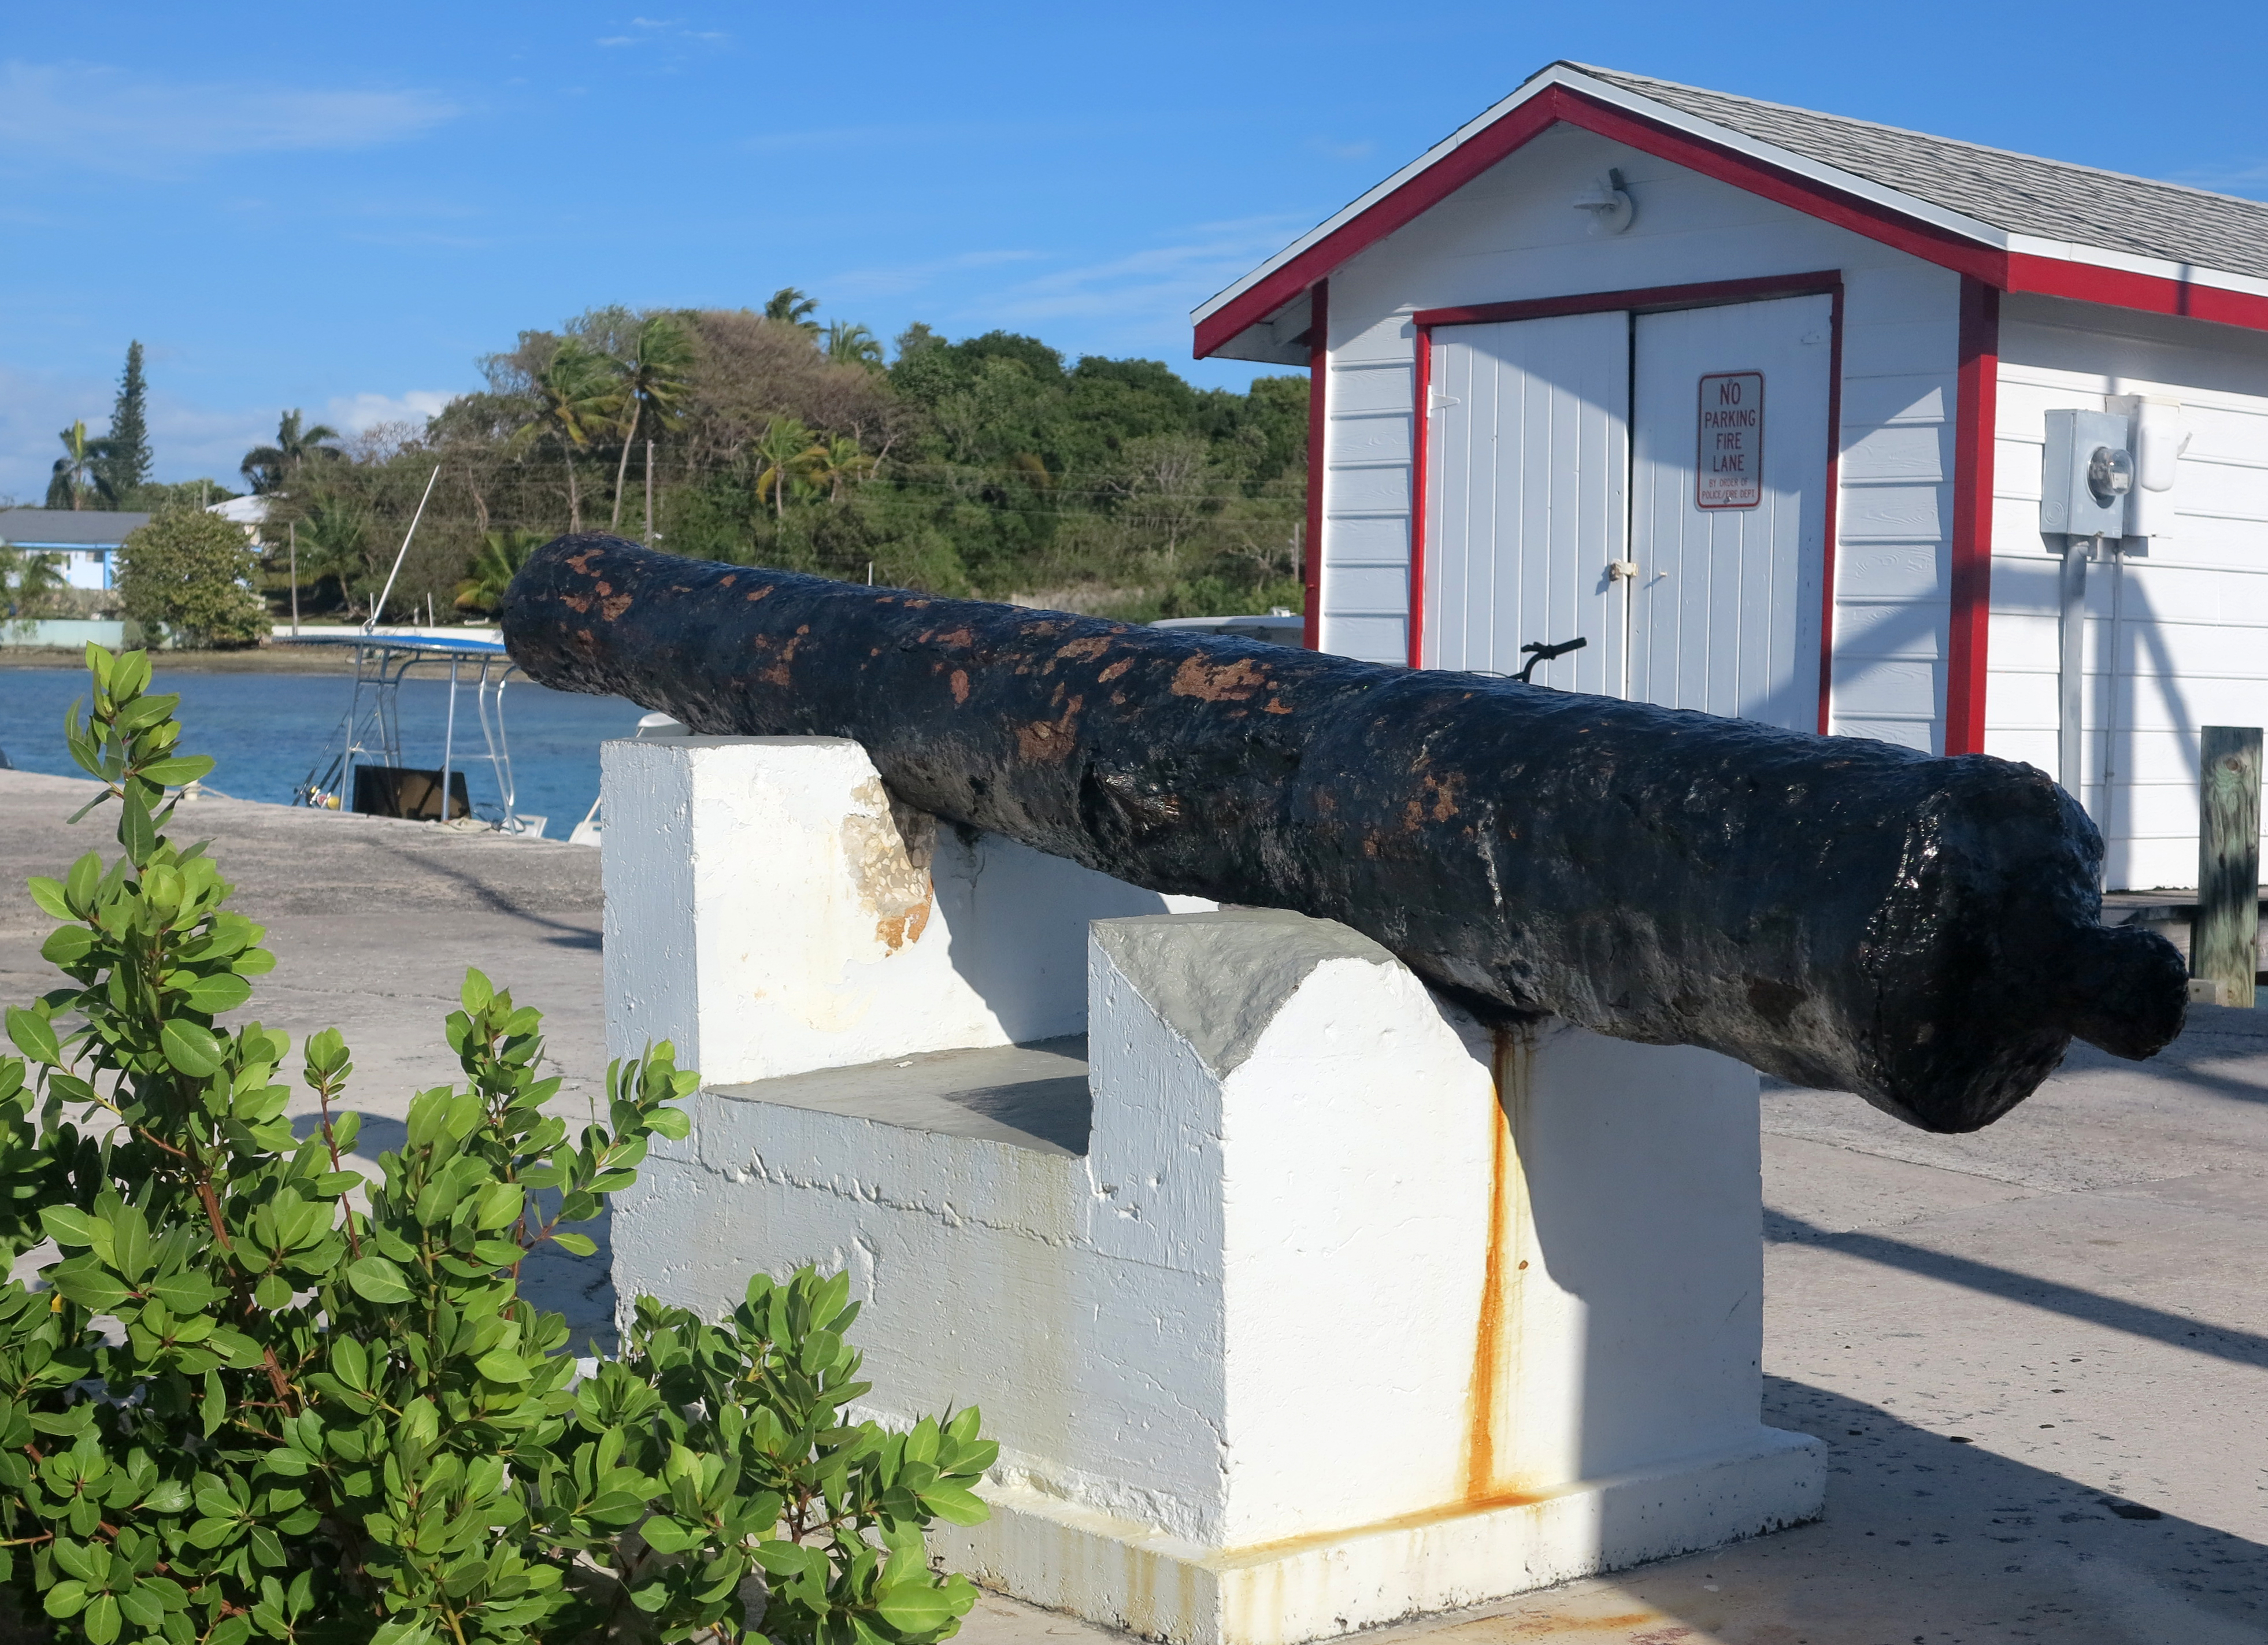 Hints of Green Turtle Cay's Past: The Wreck of the USS San Jacinto